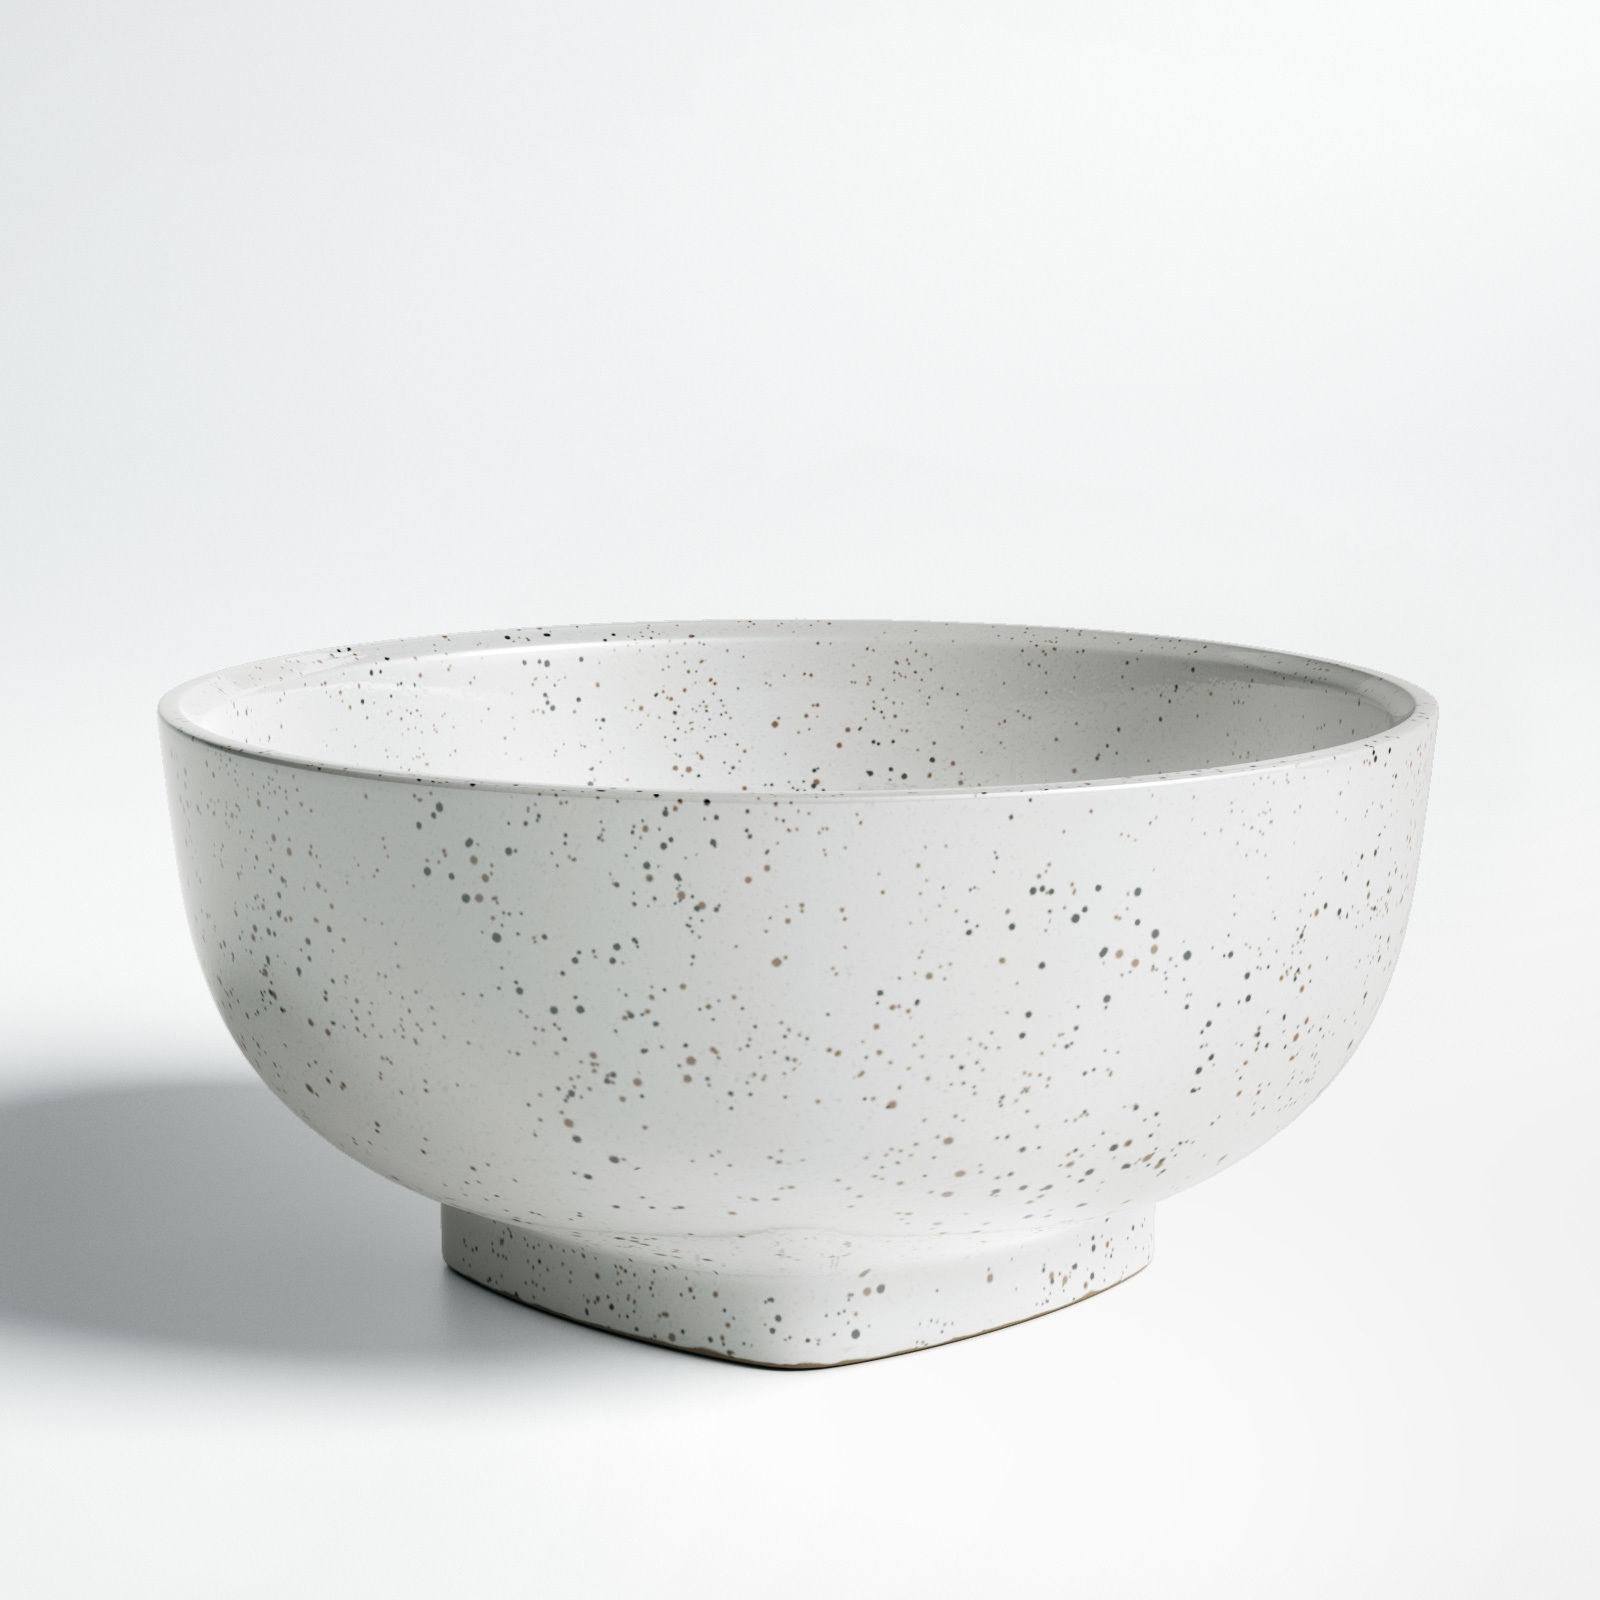 Forma Serving Bowl 24cm by Bolia